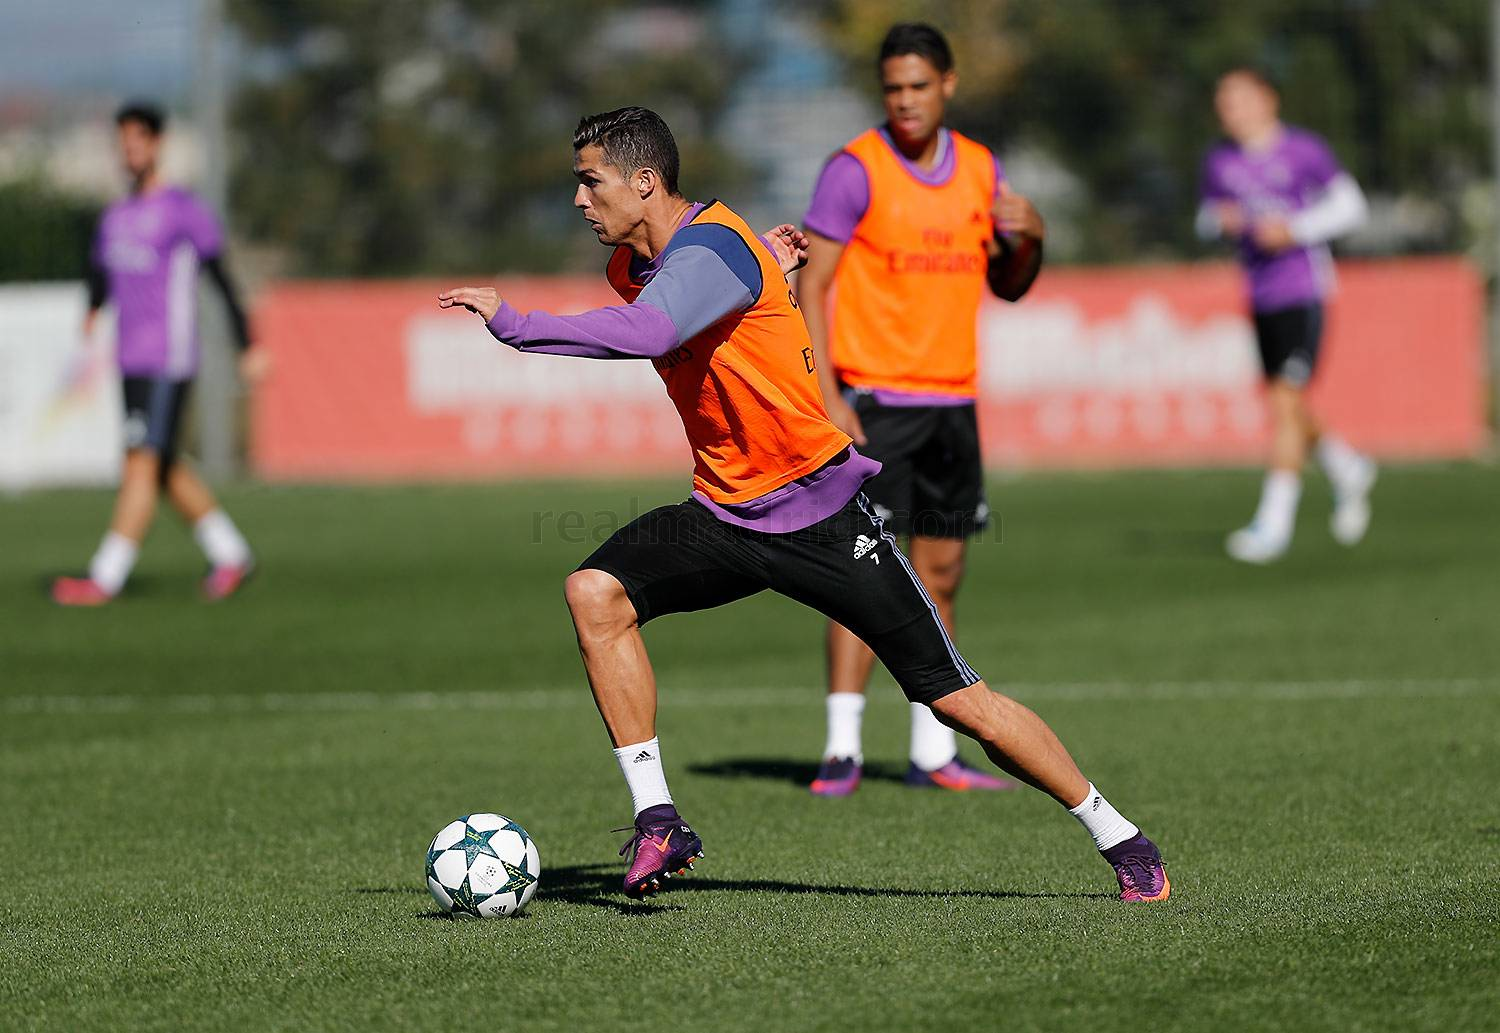 Real Madrid - Entrenamiento del Real Madrid - 31-10-2016